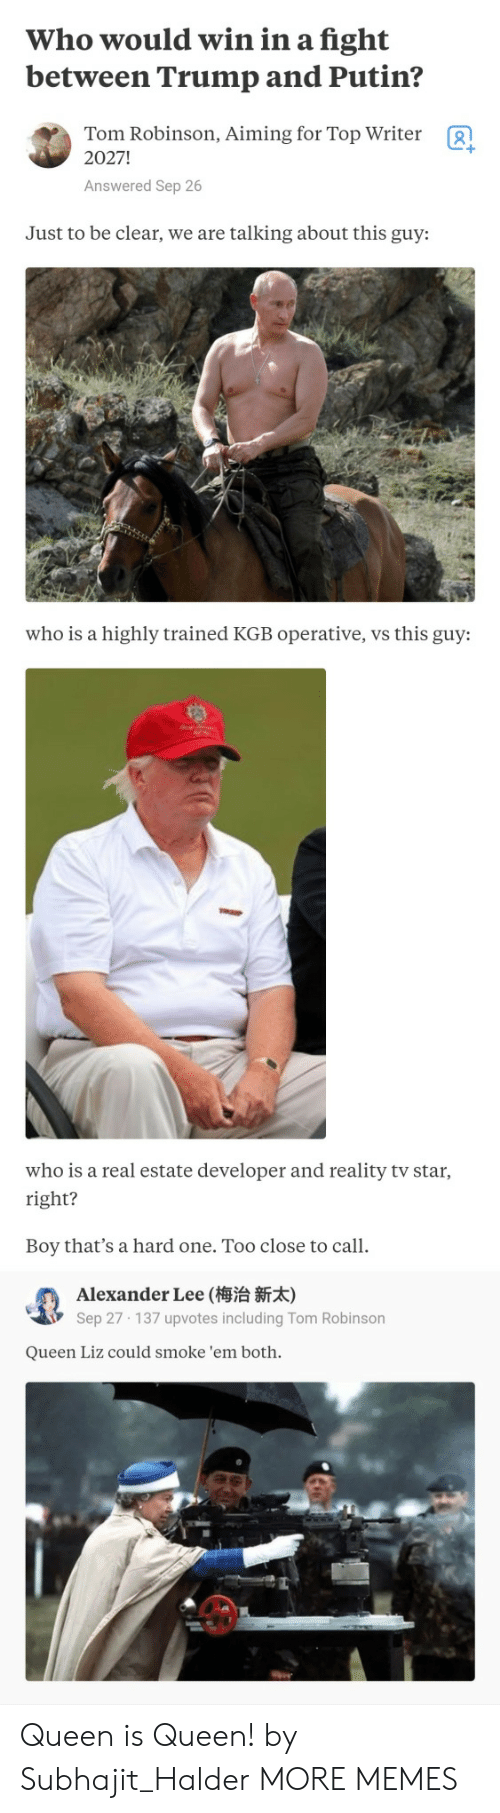 Dank, Memes, and Target: Who would win in a fight  between Trump and Putin?  Tom Robinson, Aiming for Top Writer  2027!  g  Answered Sep 26  Just to be clear, we are talking about this guy:  who is a highly trained KGB operative, vs this guy:  who is a real estate developer and reality tv star  right?  Boy that's a hard one. Too close to call.  Alexander Lee (梅治新  Sep 27 137 upvotes including Tom Robinson  Queen Liz could smoke 'em both. Queen is Queen! by Subhajit_Halder MORE MEMES